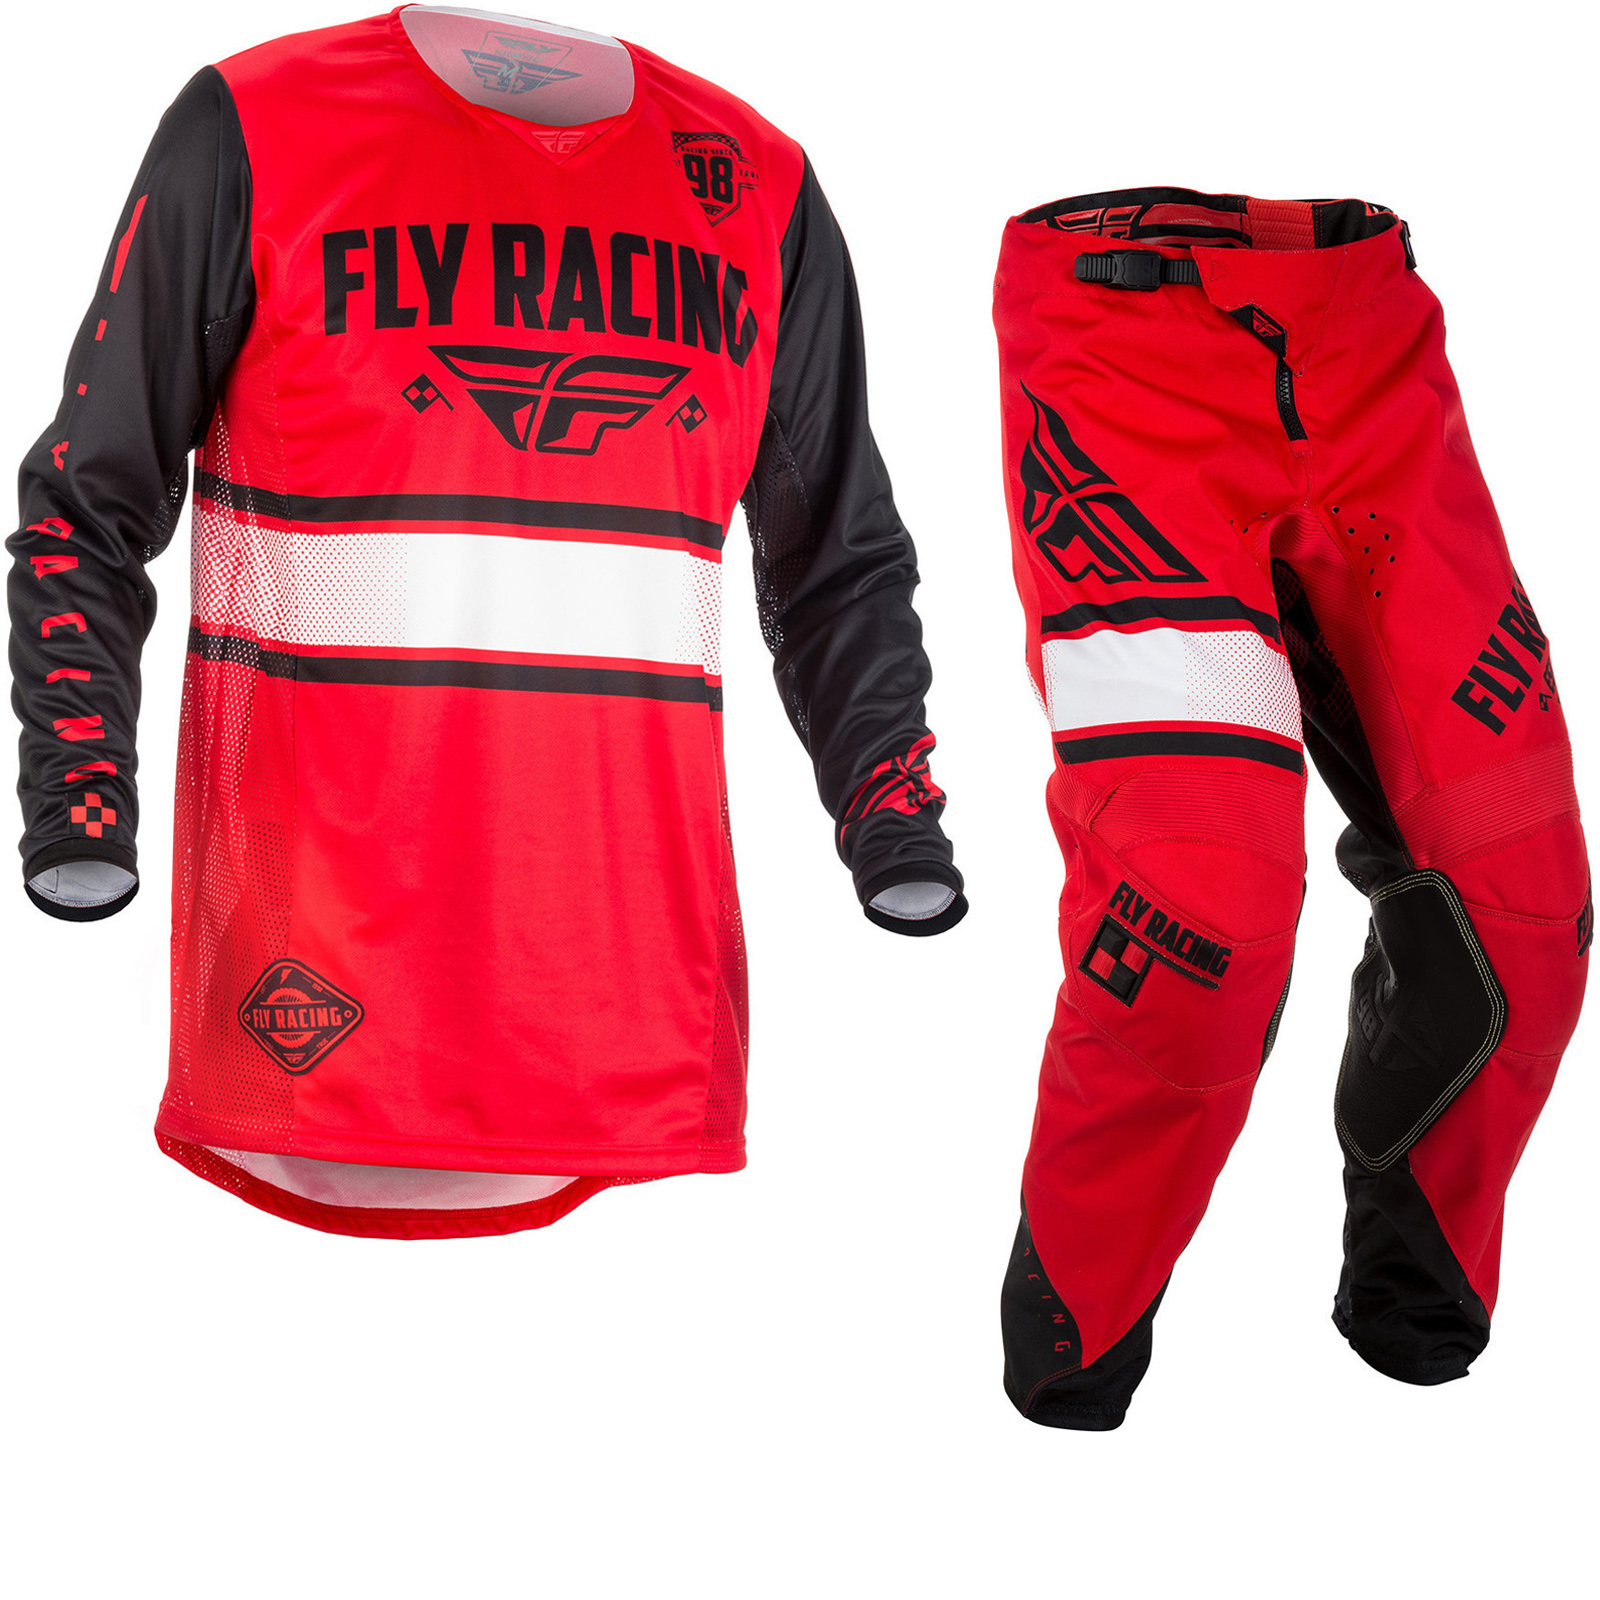 3220f26d8 Youth Motocross Gear   Ash Cycles